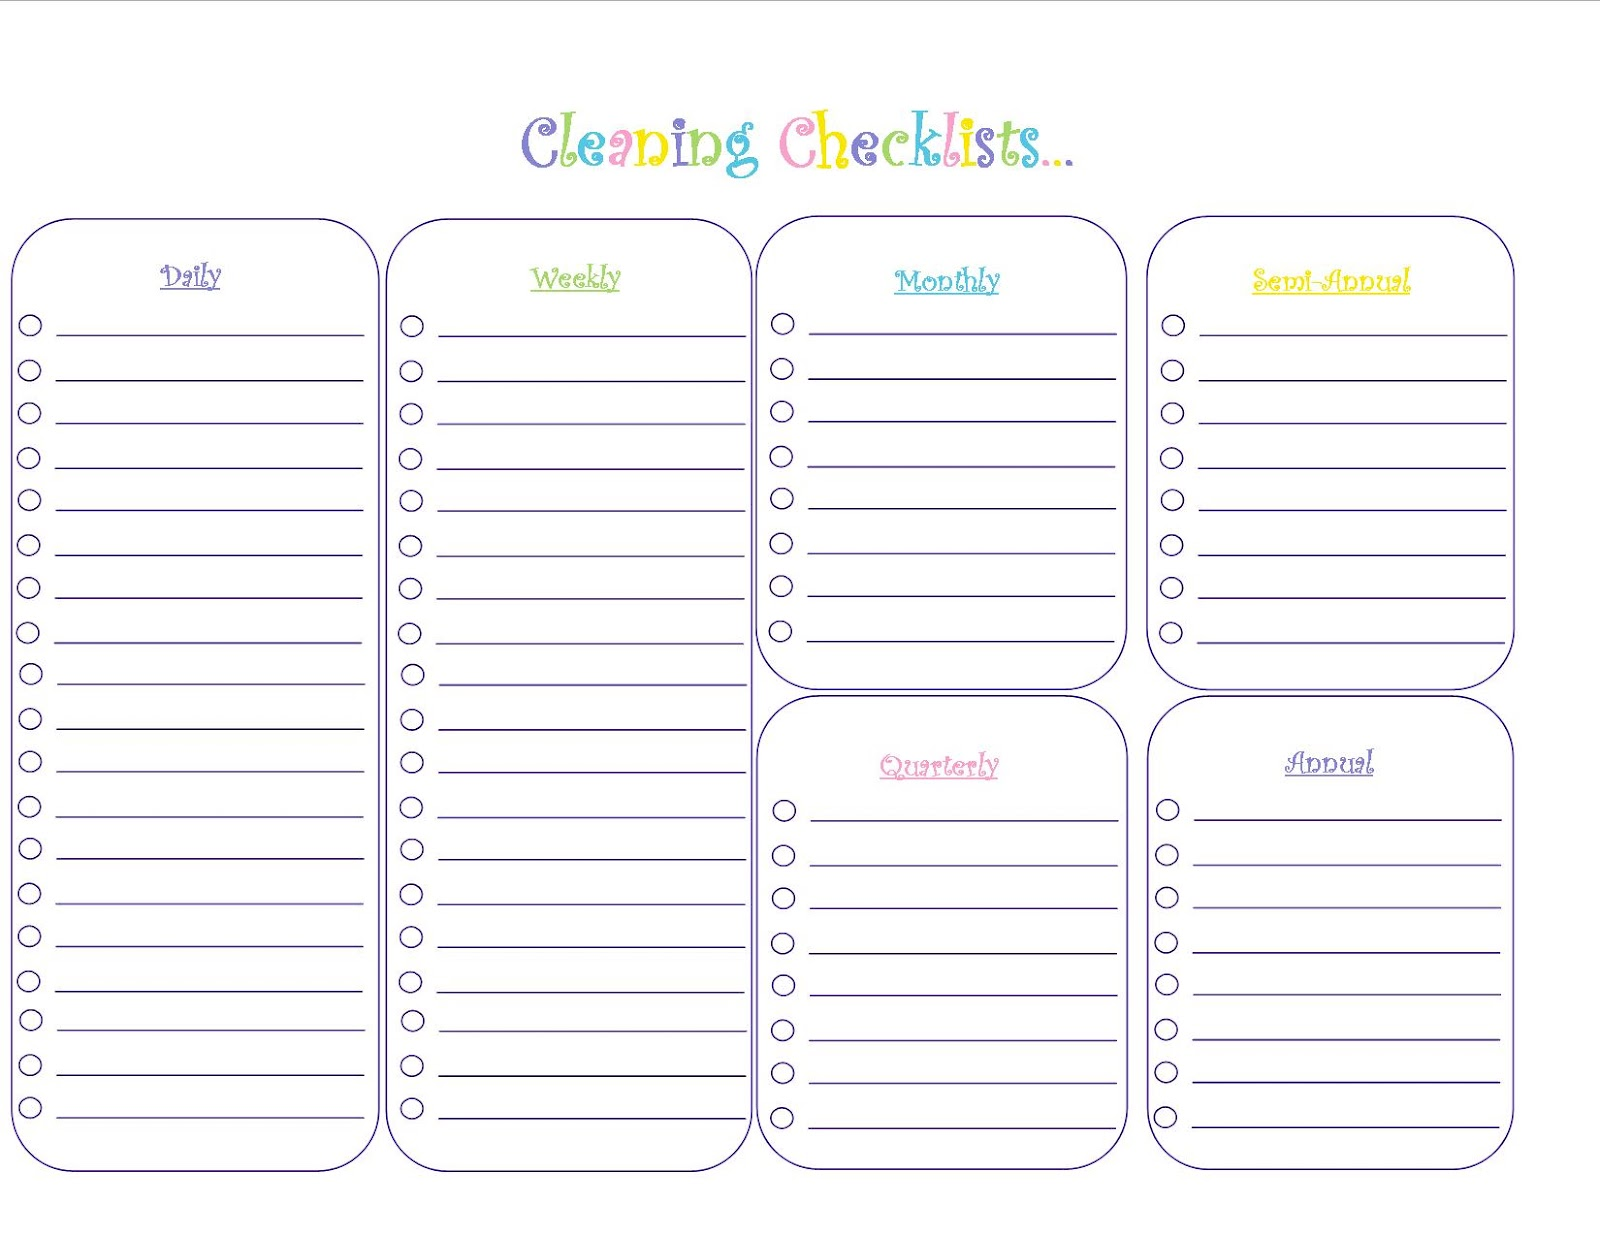 Eastern Connecticut State University: House cleaning checklist